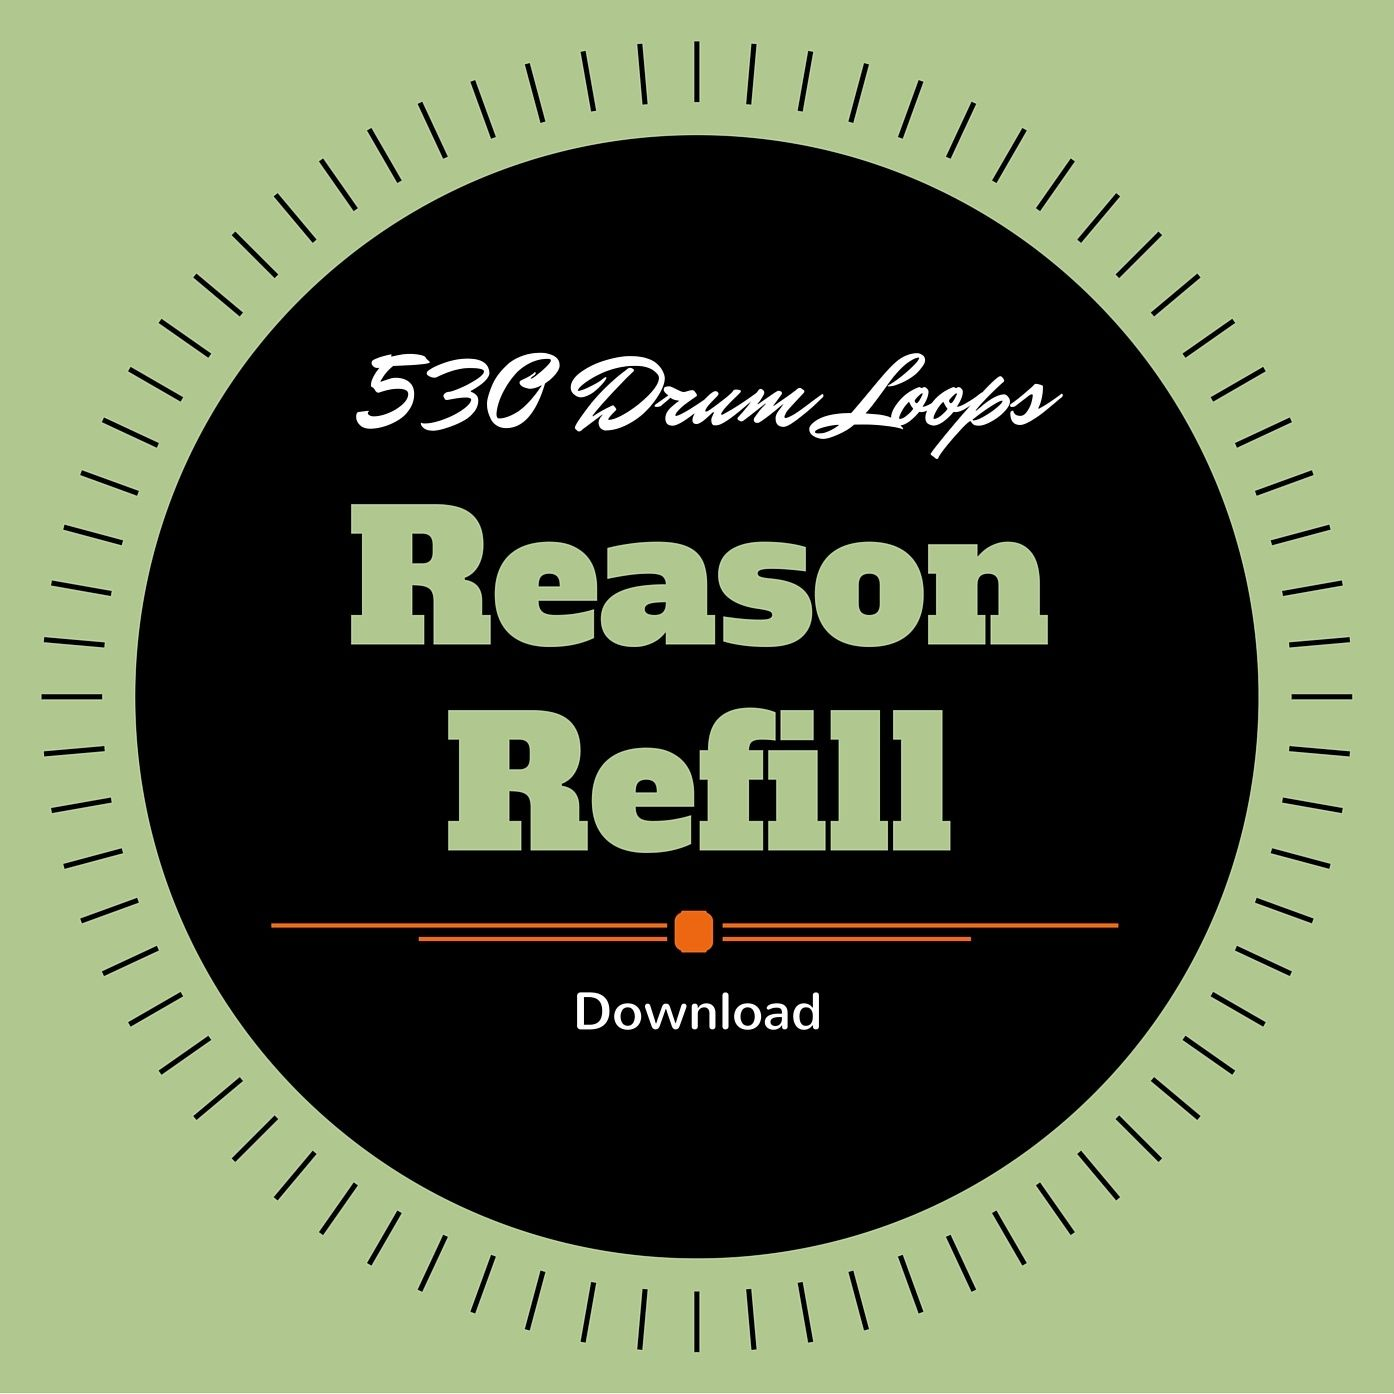 530 free drum loops for reason these are loops from the